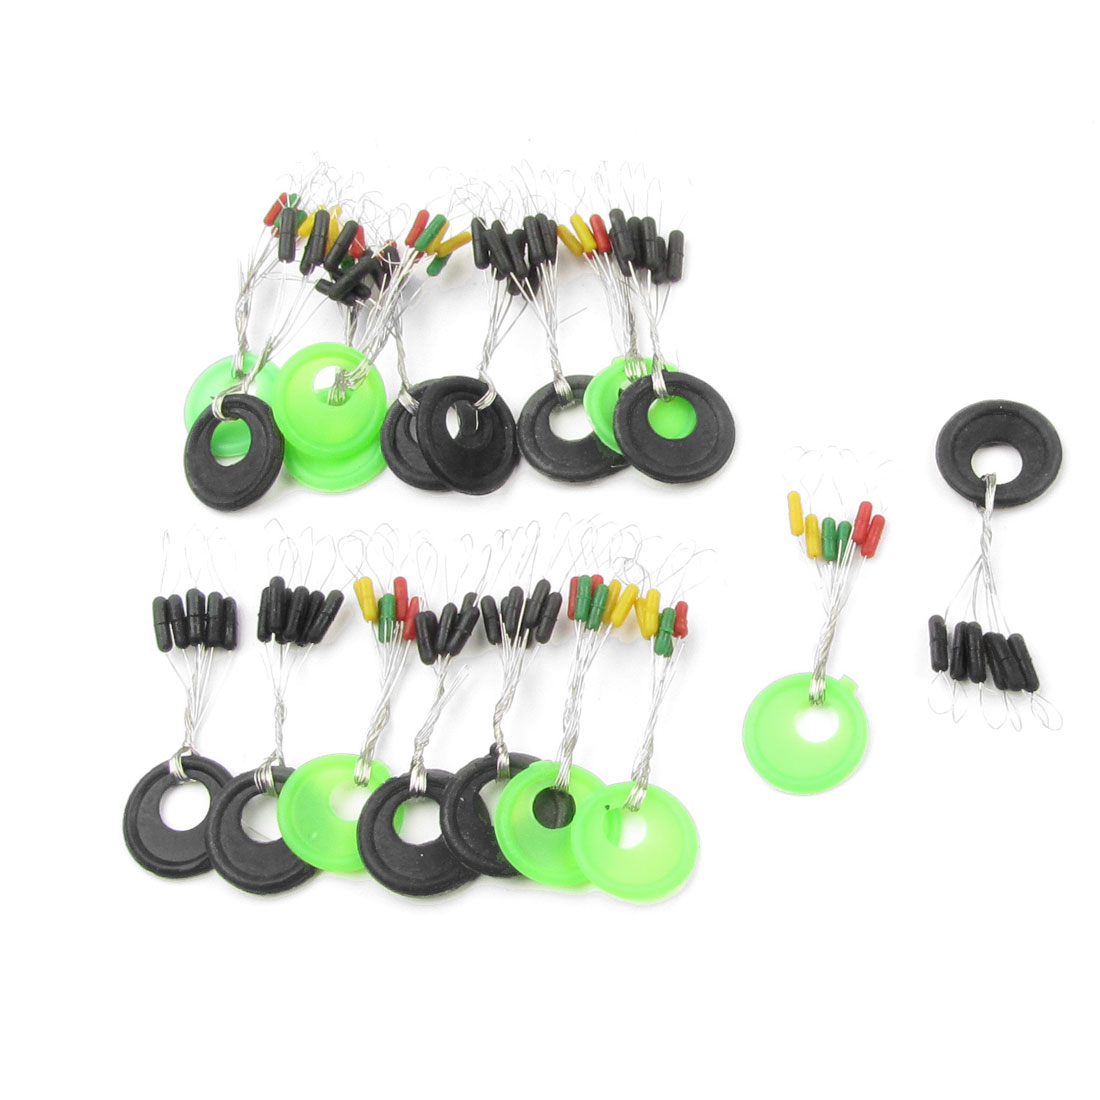 18pcs Multicolored Plastic Ring Rubber Stoppers Fishing Bobber Floater 6 in 1